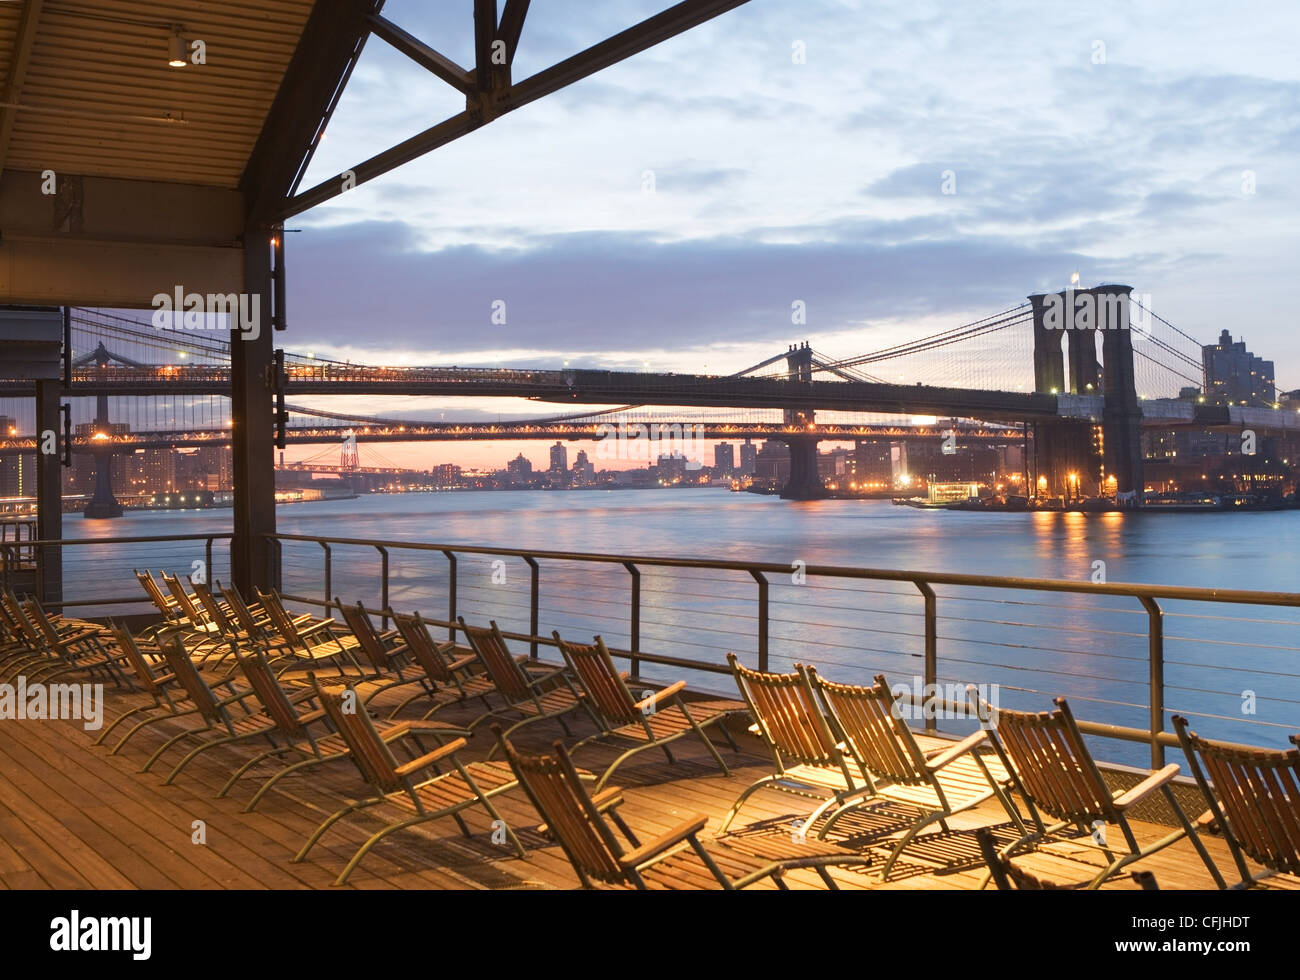 Deckchairs overlooking East River, New York City, USA - Stock Image